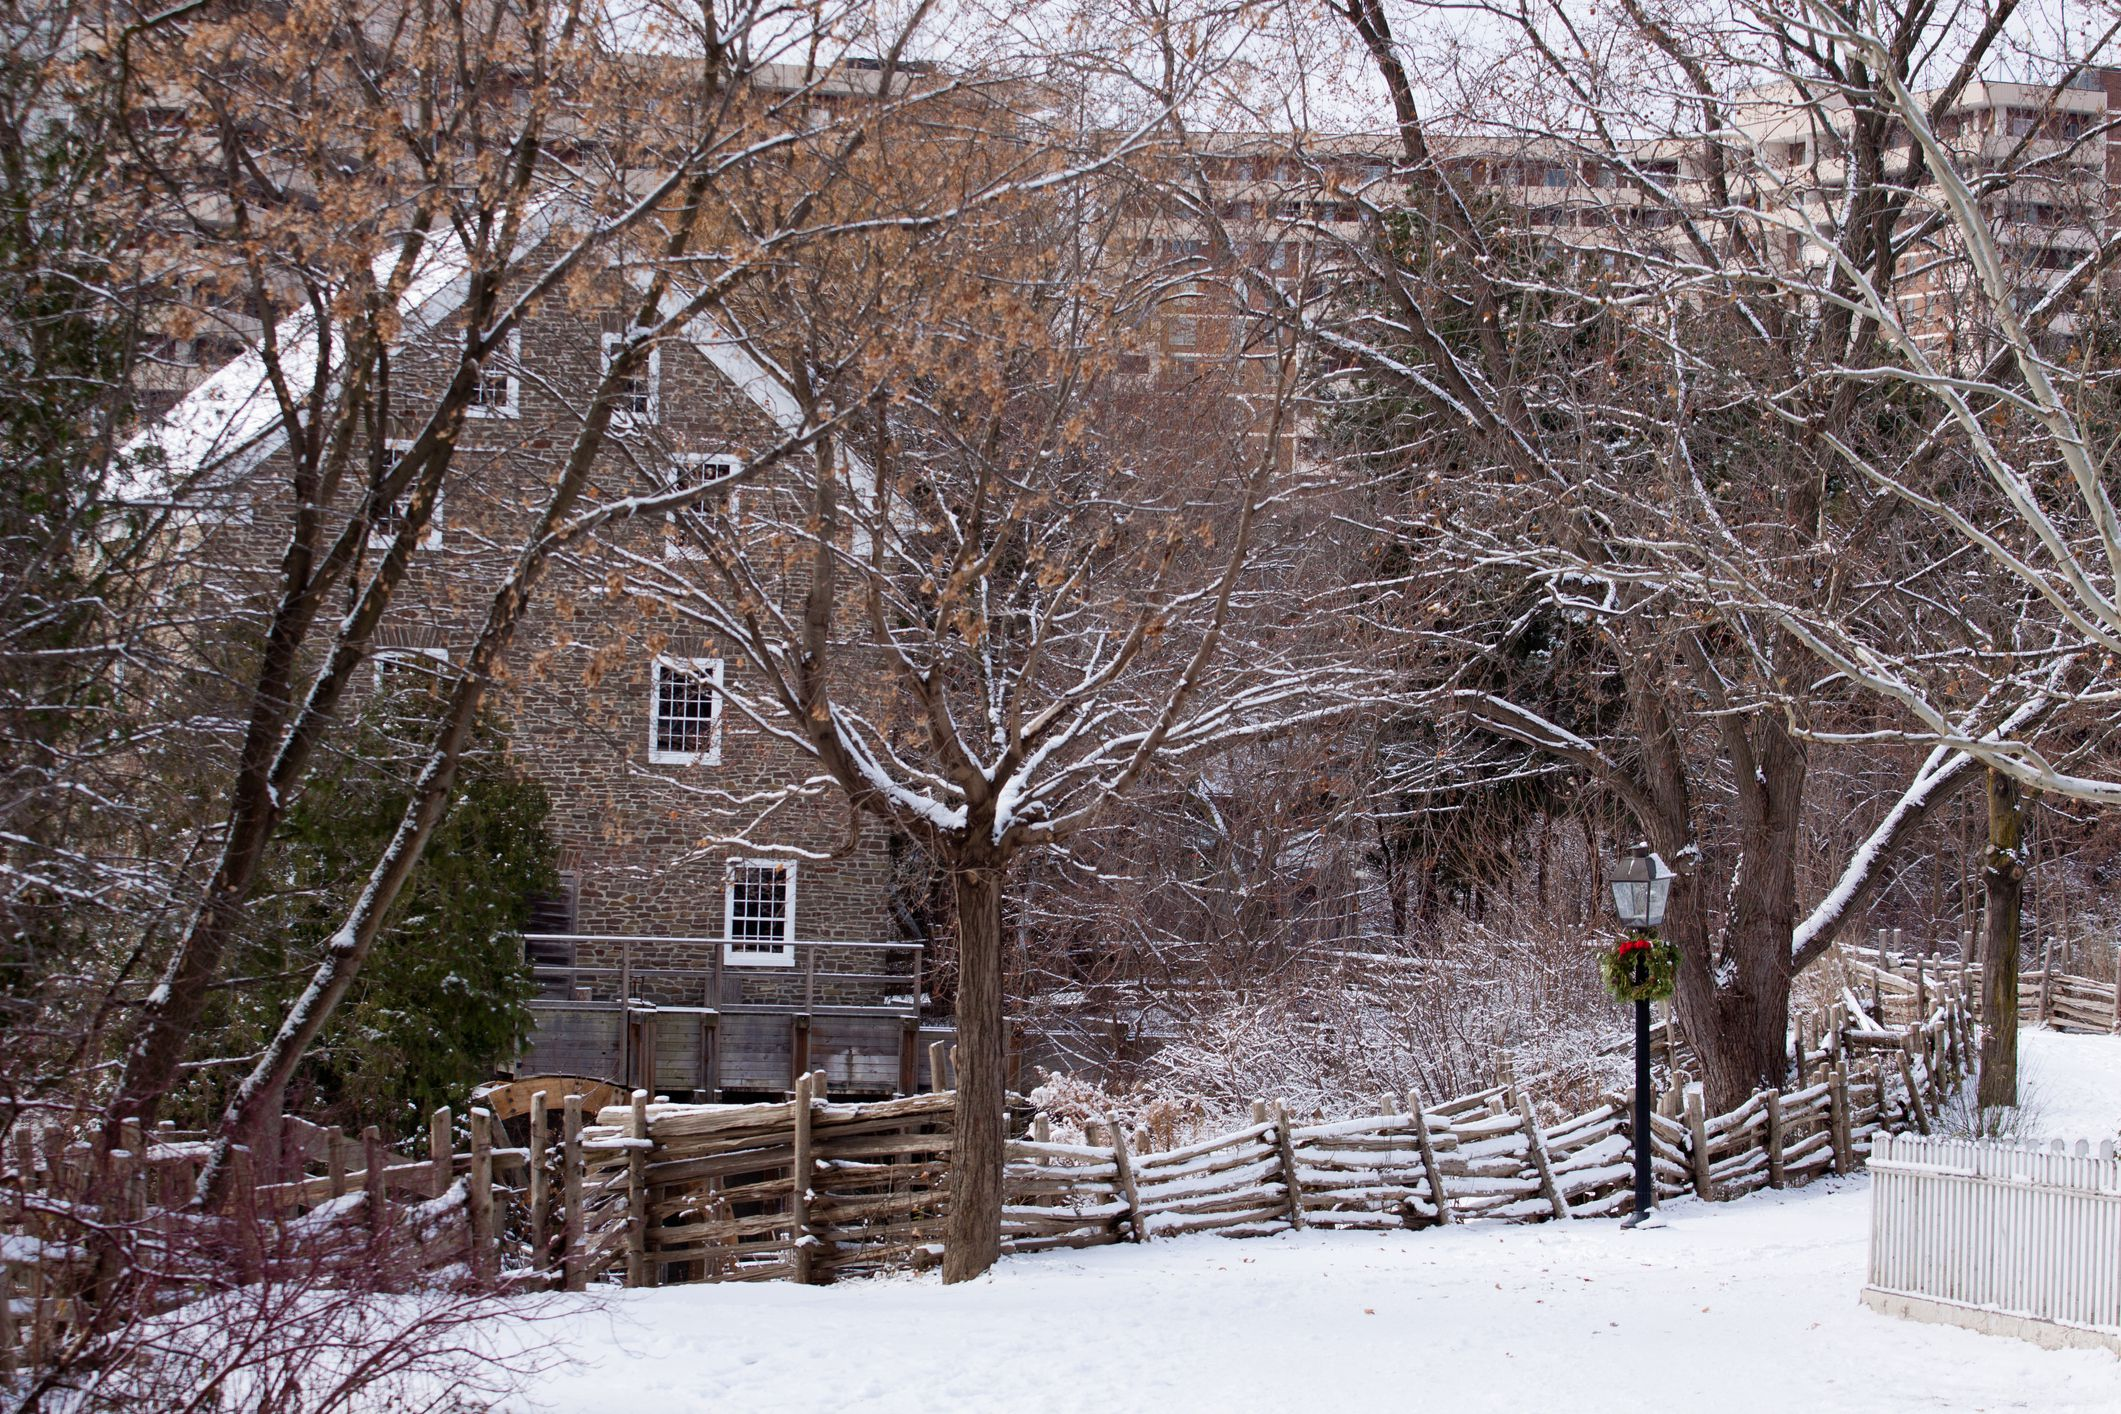 The picture of Black Creek Pineer Village at Christmas time